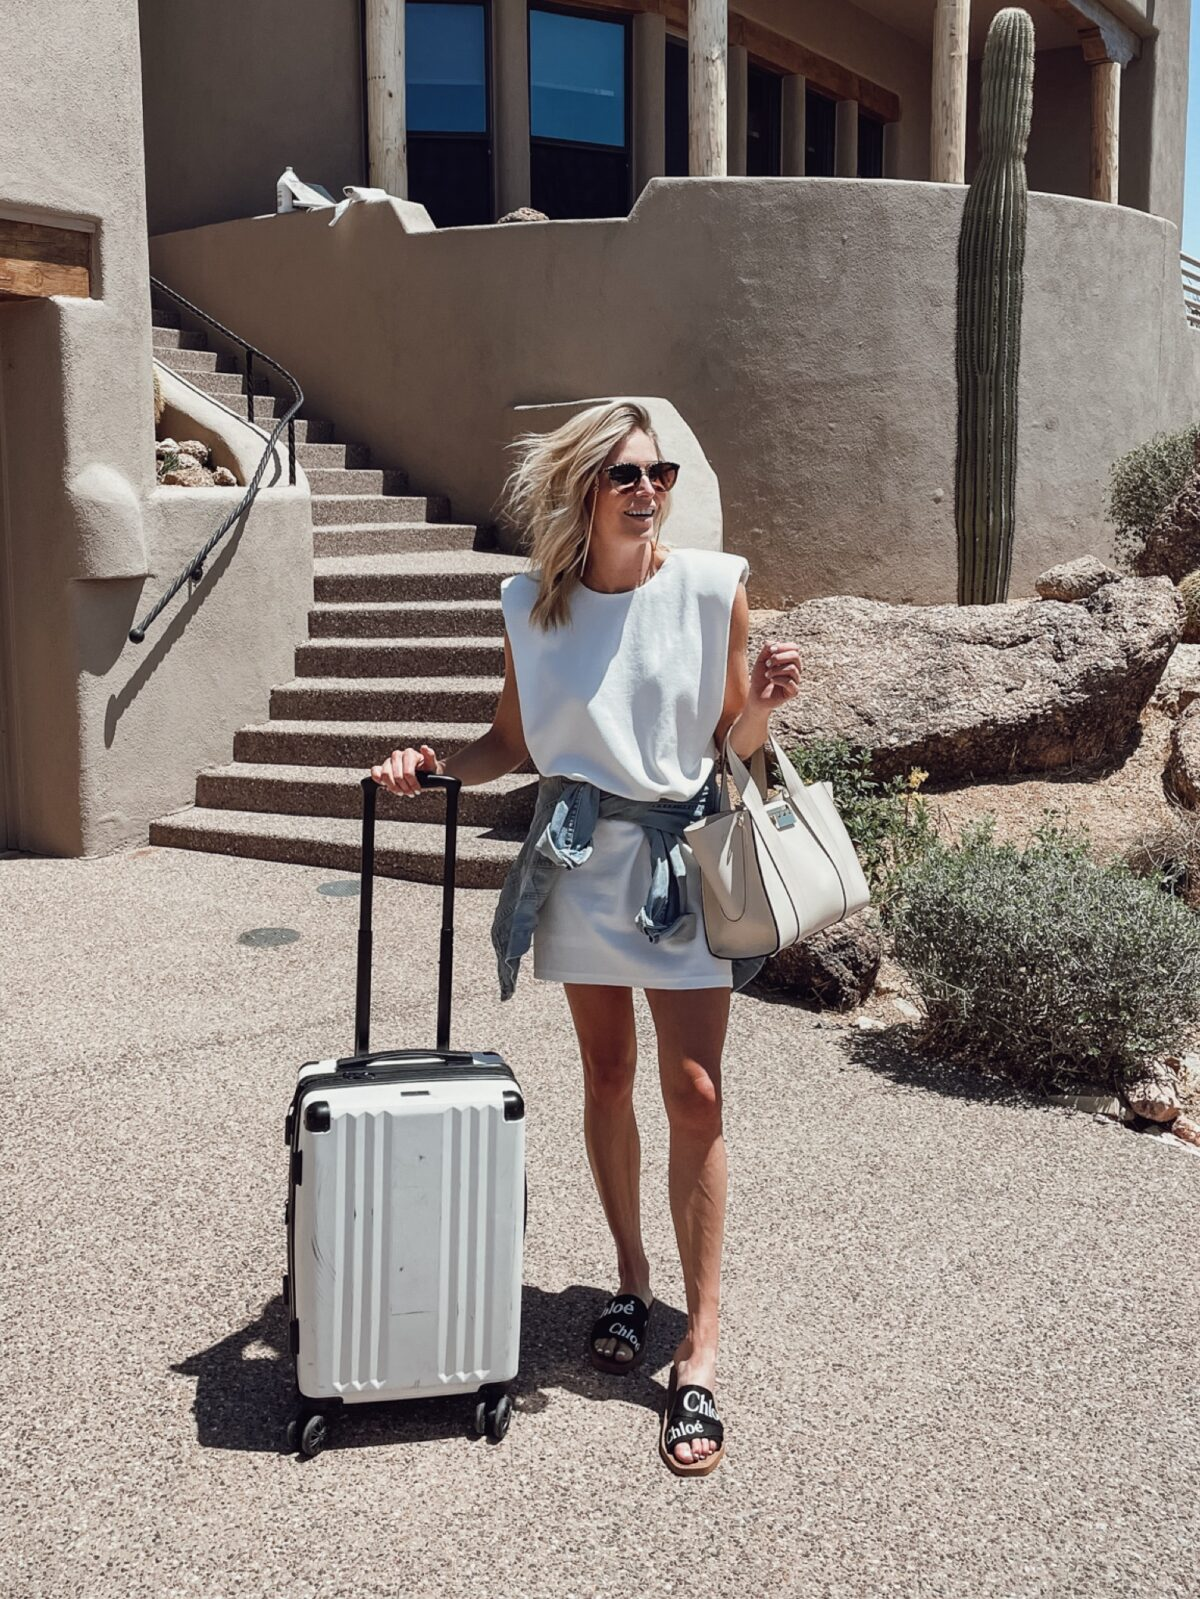 woman in white dress and holding white luggage